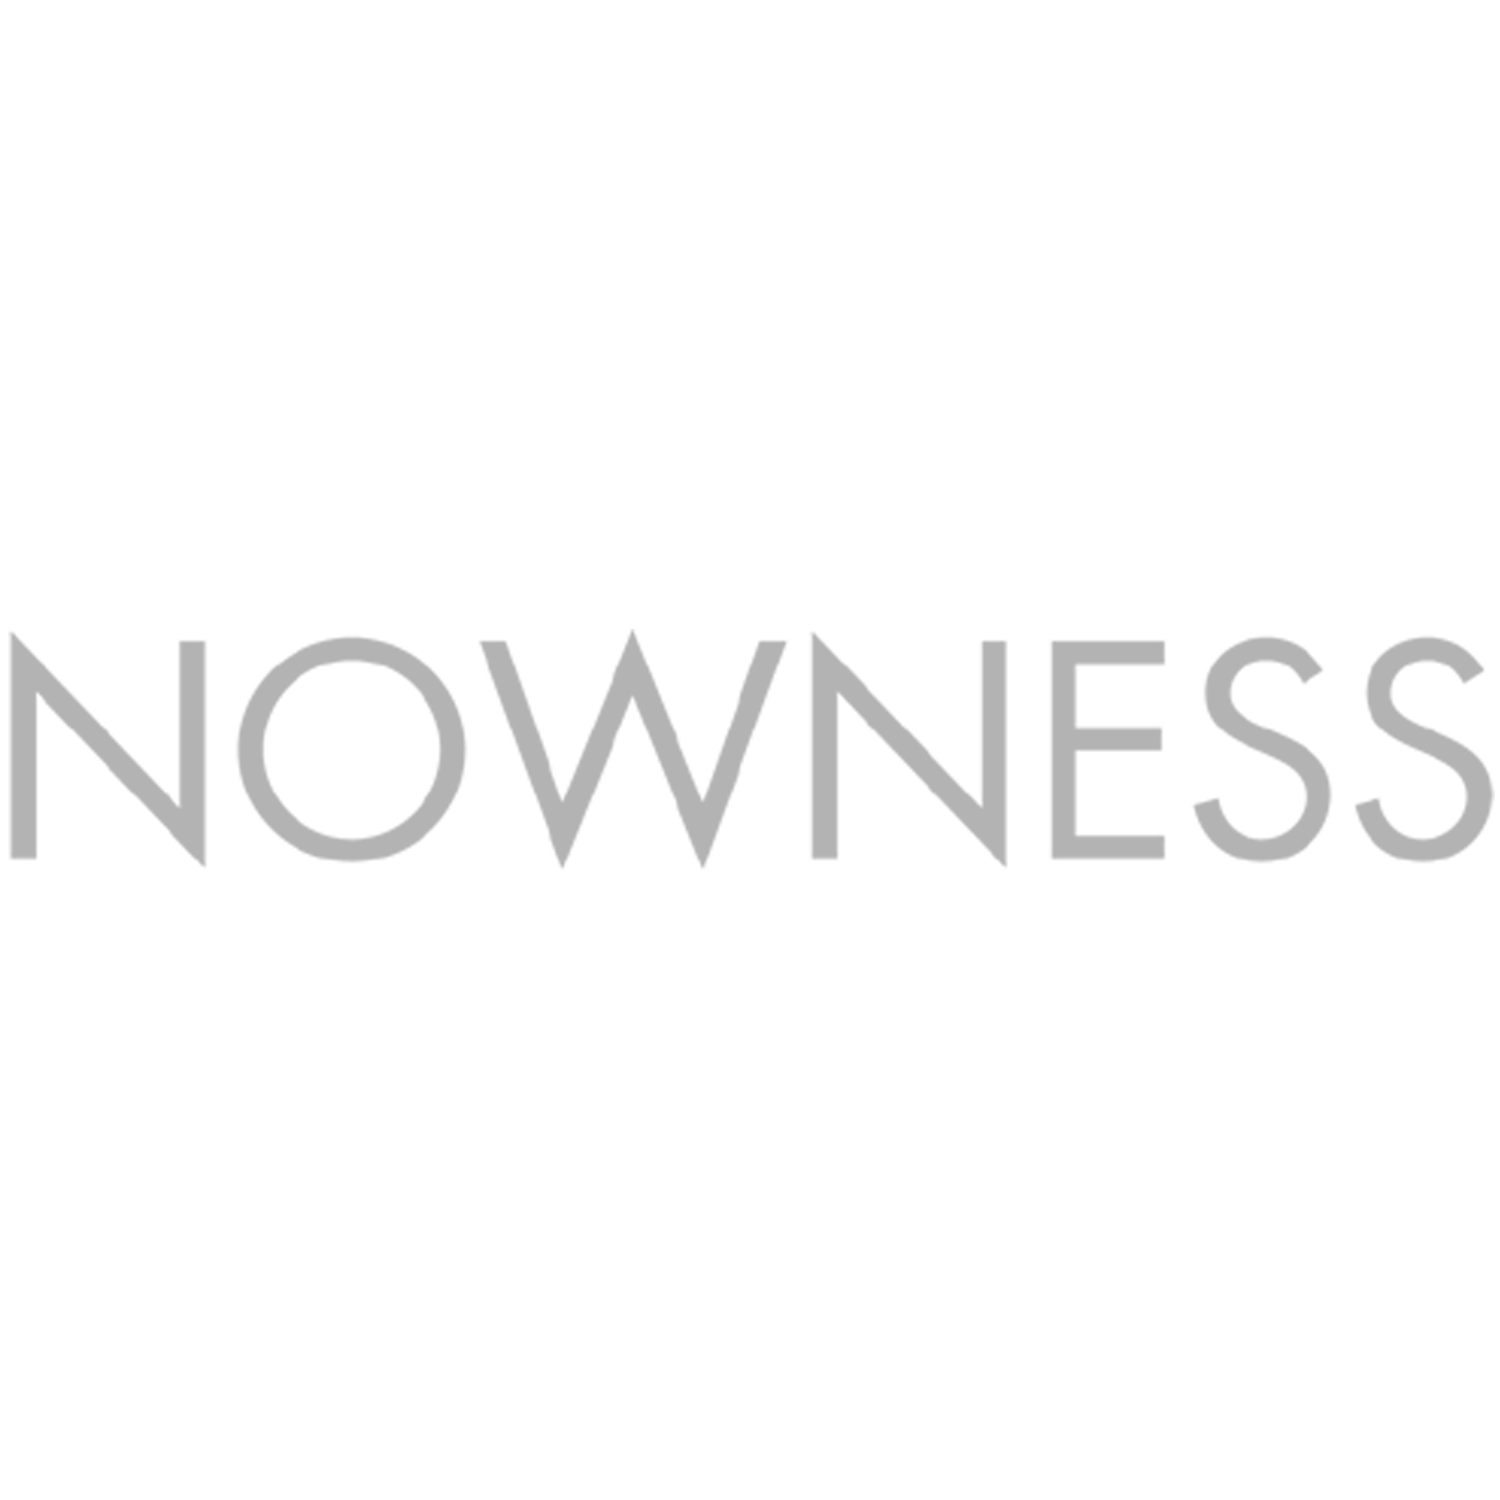 Nowness.png